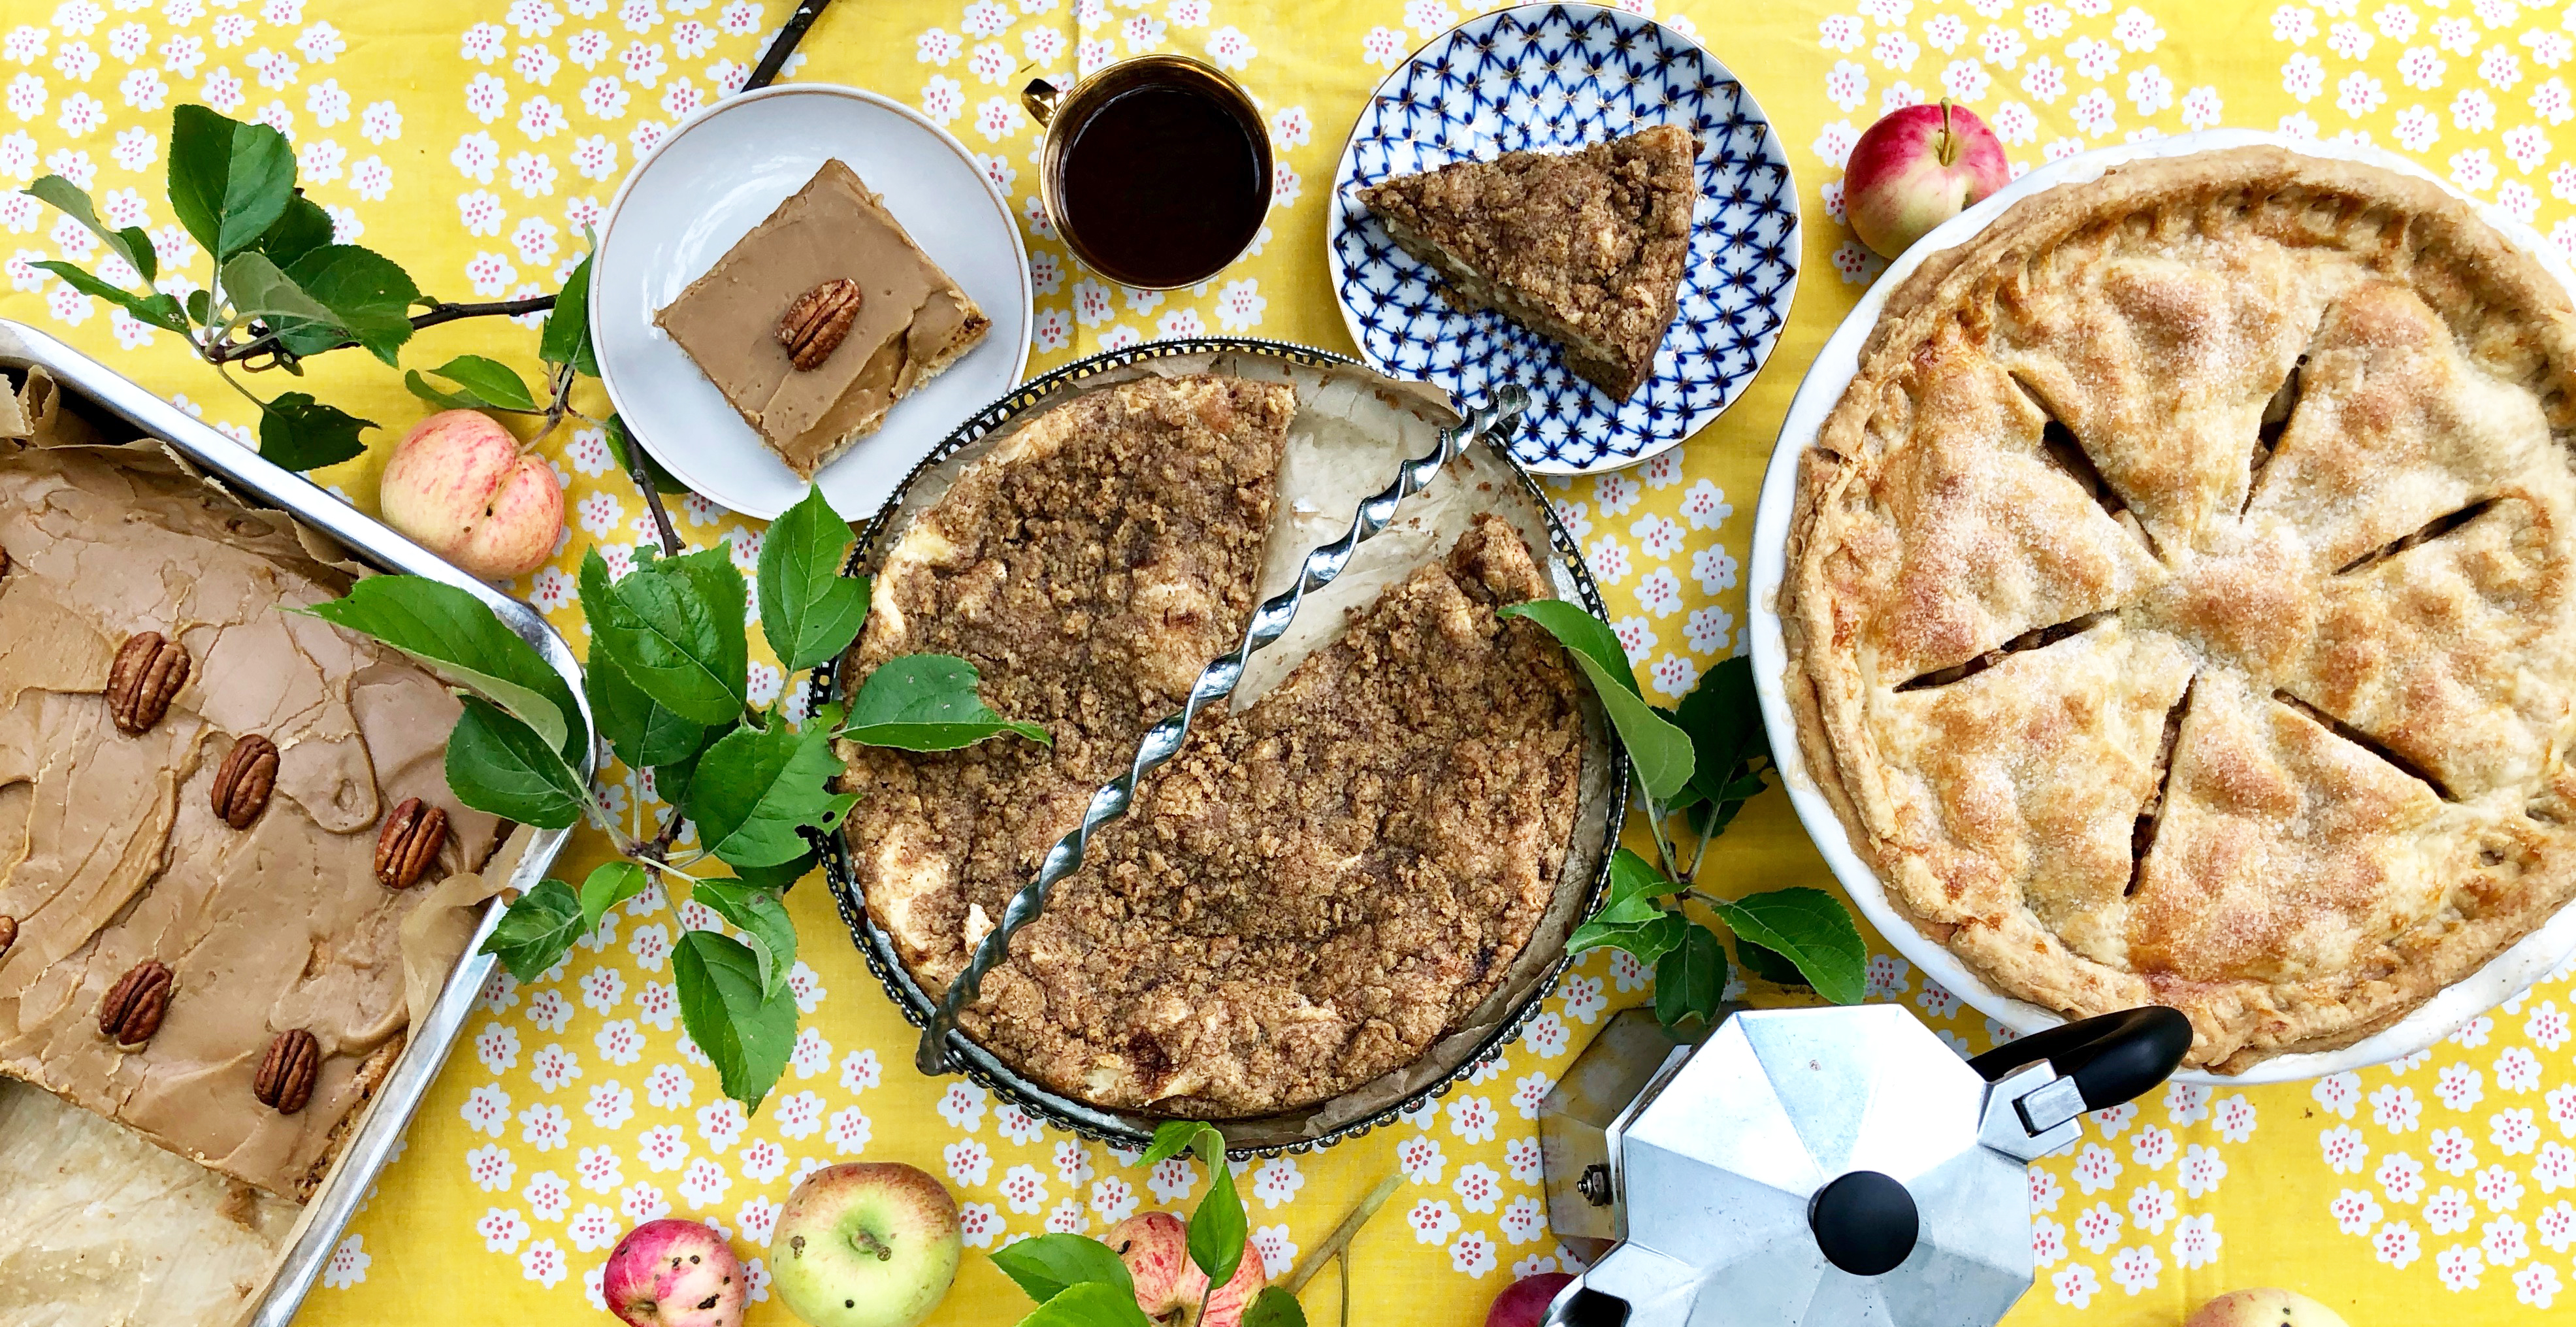 Amerikkalainen apple pie